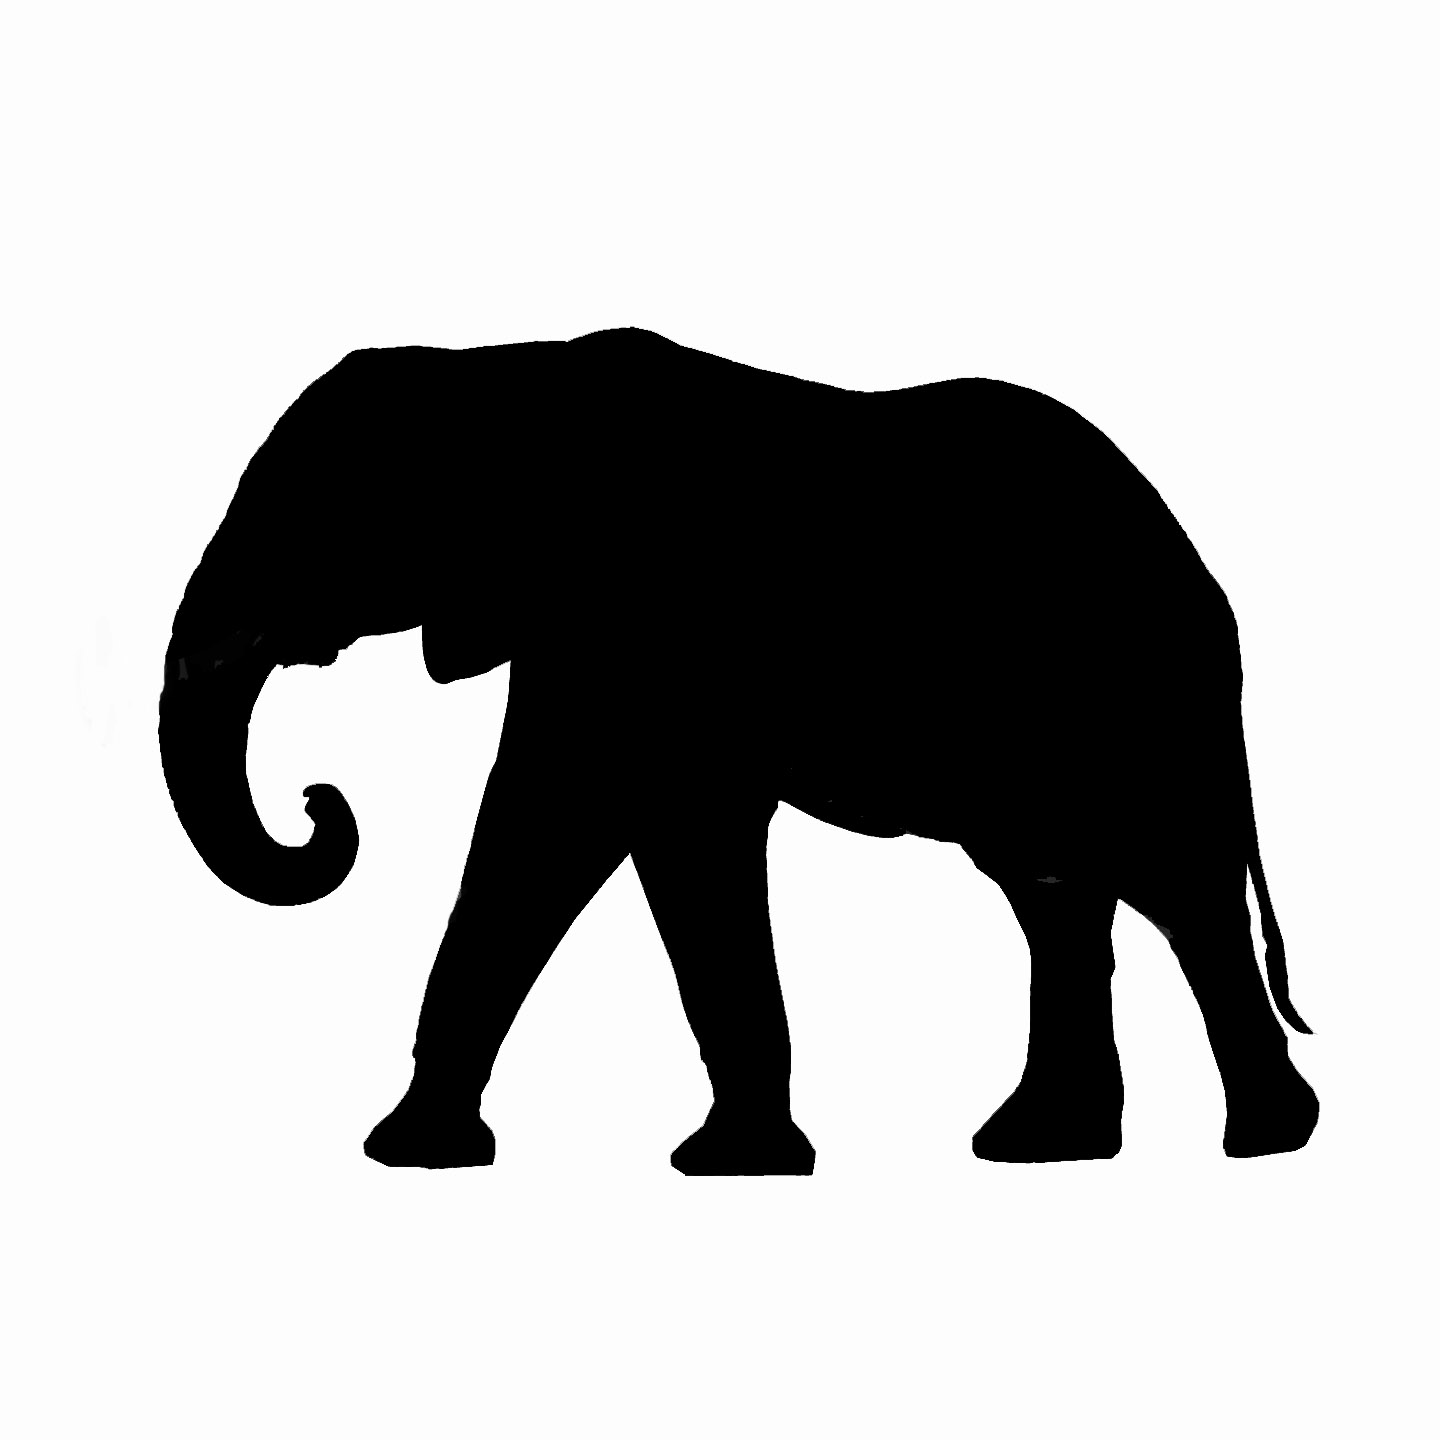 Free Alabama Elephant Silhouette, Download Free Clip Art.